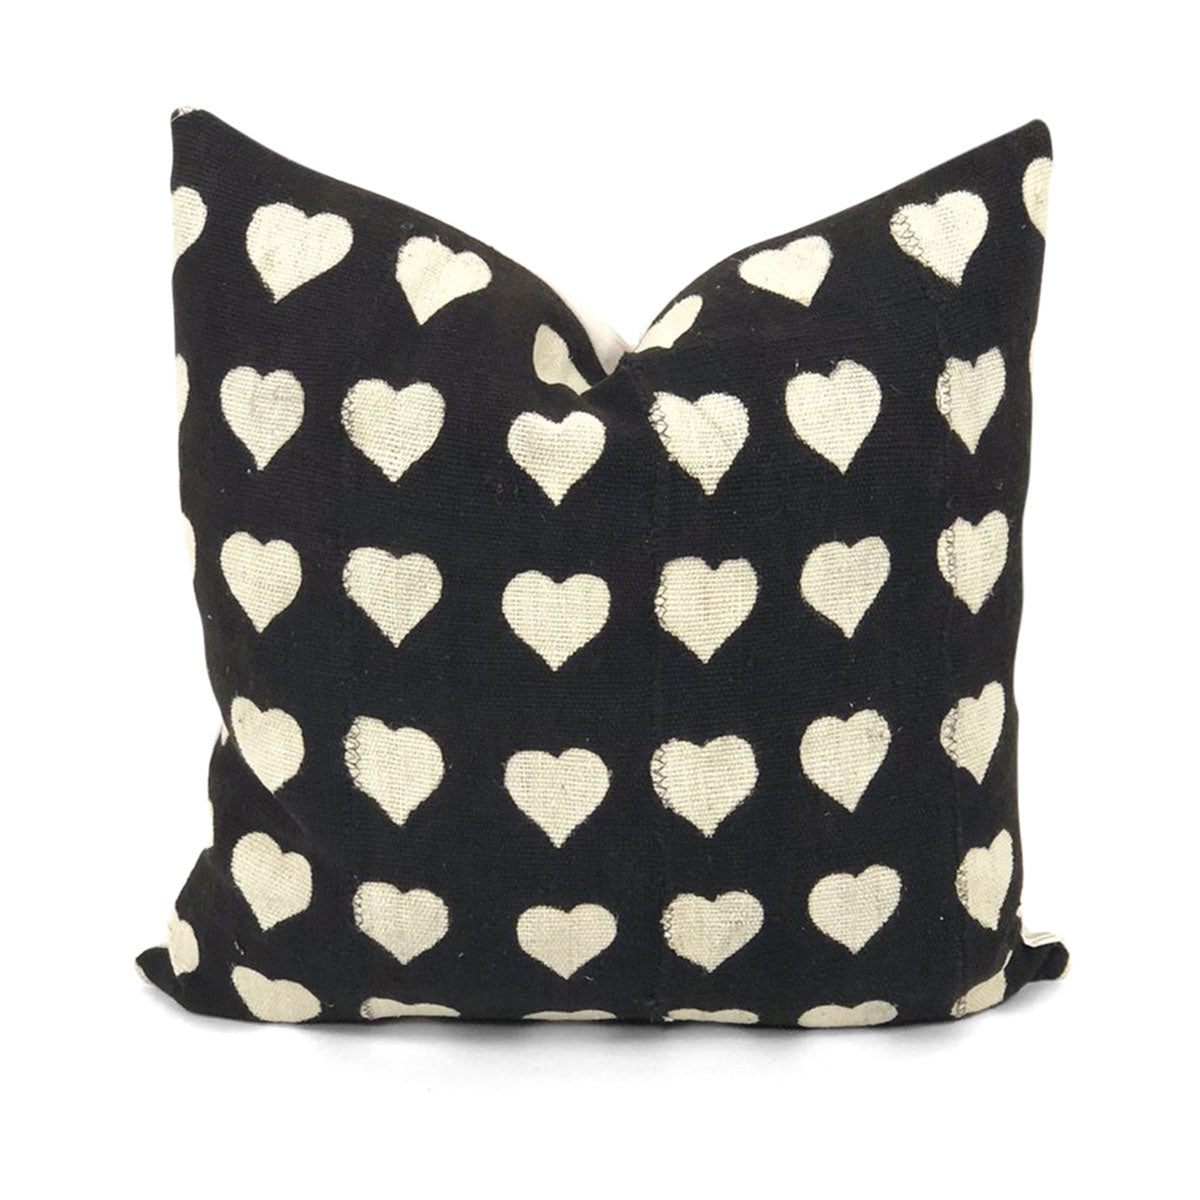 Heart Mudcloth Pillow